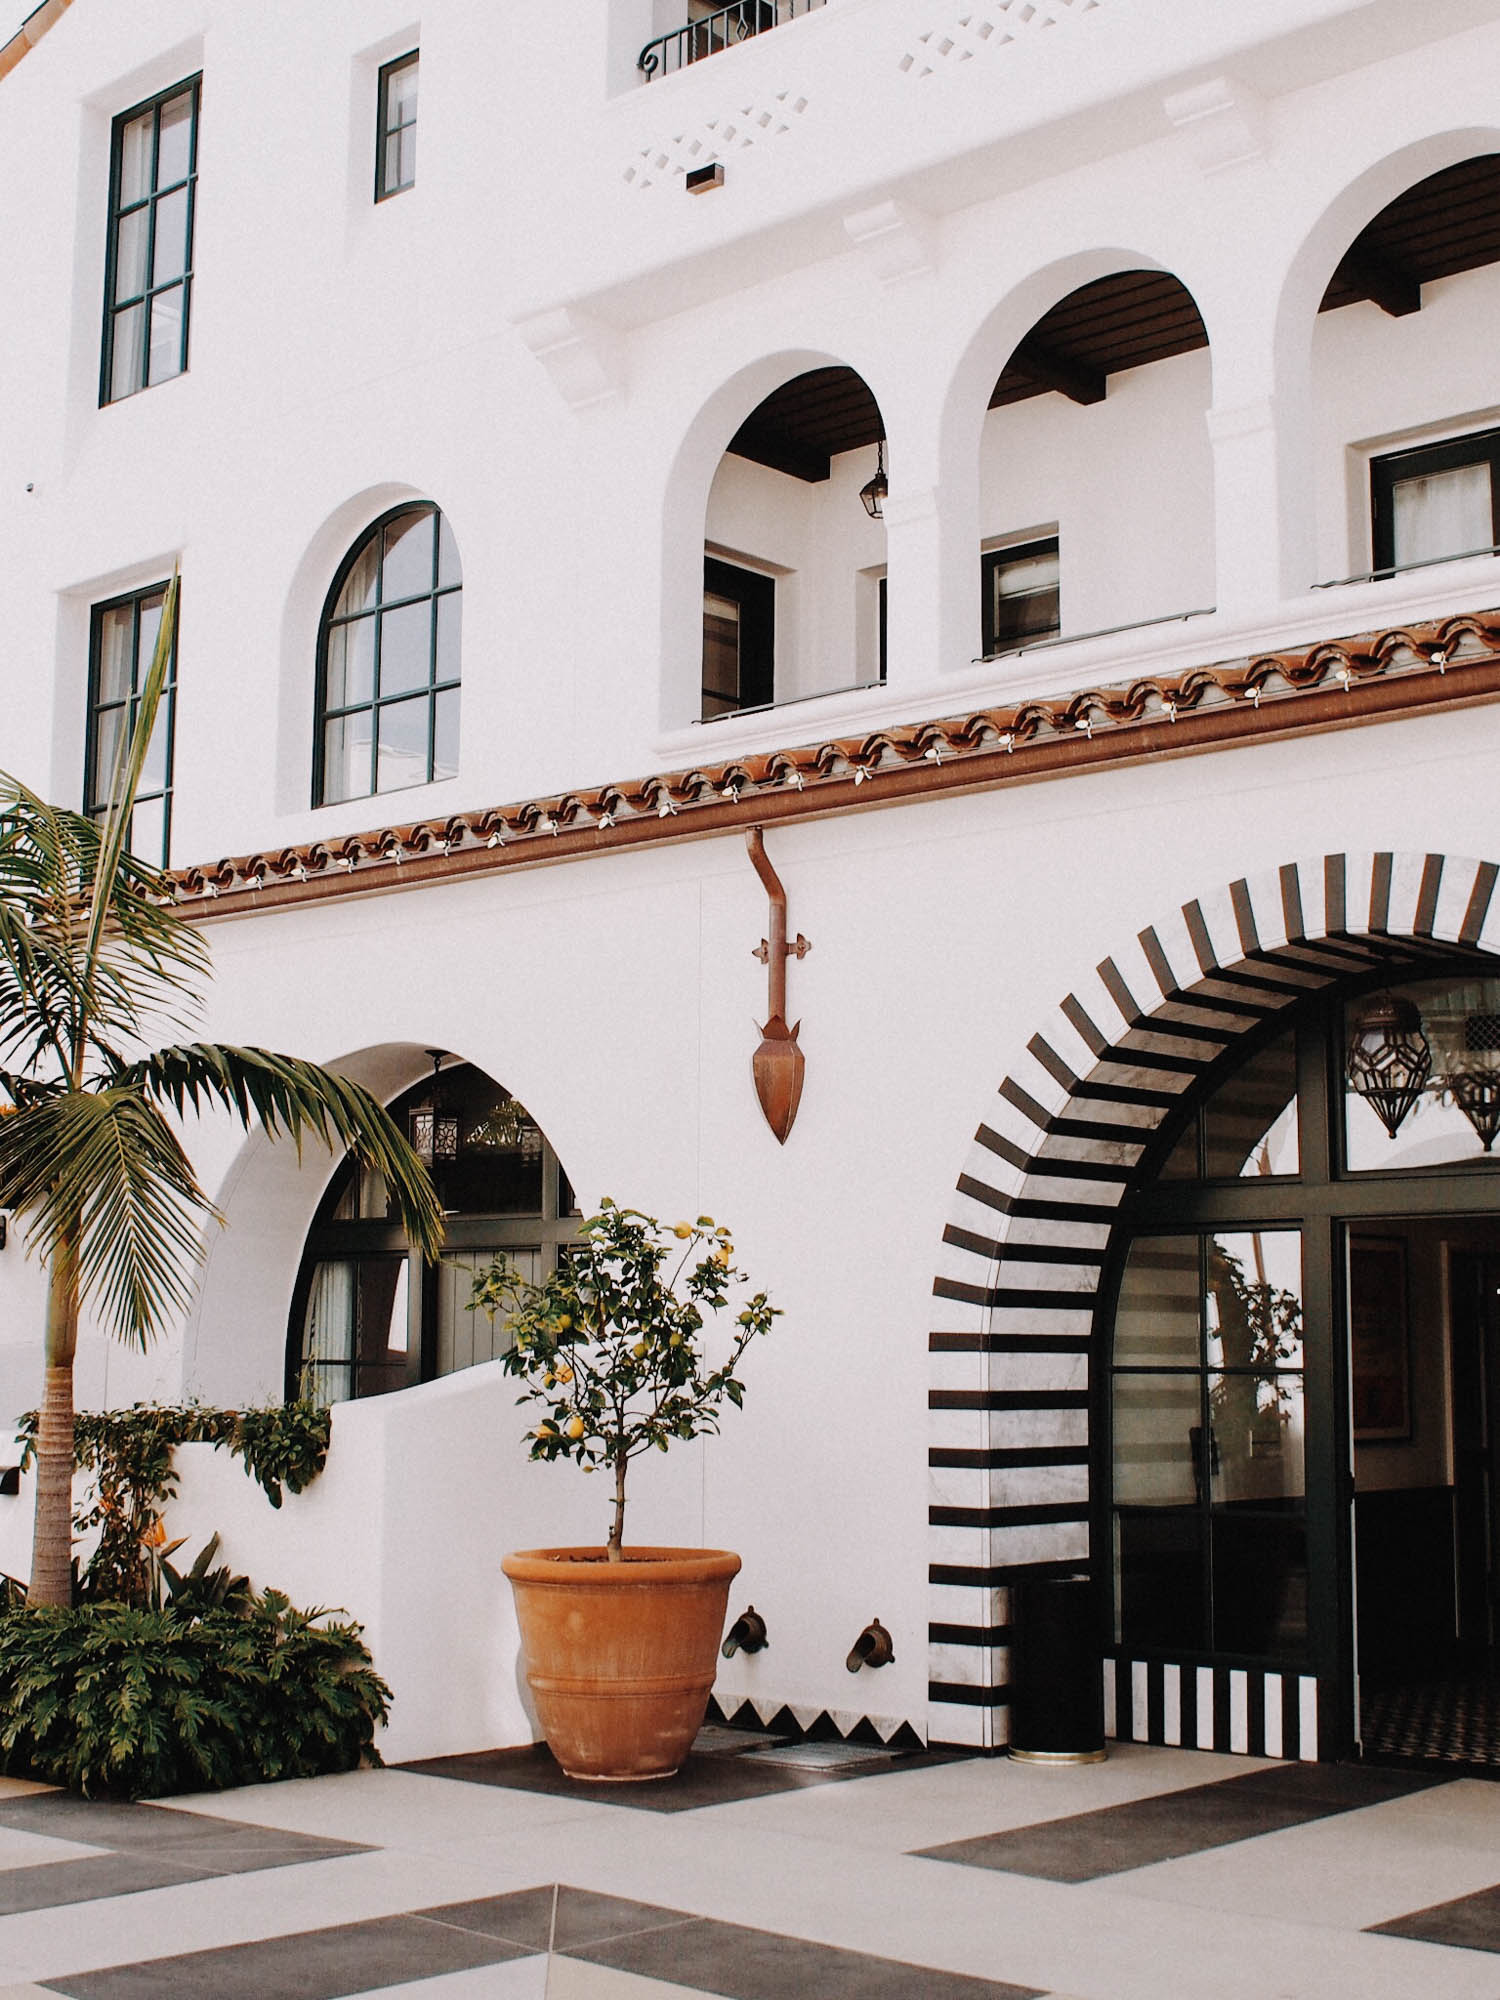 48 hours in Santa Barbara | A Fabulous Fete